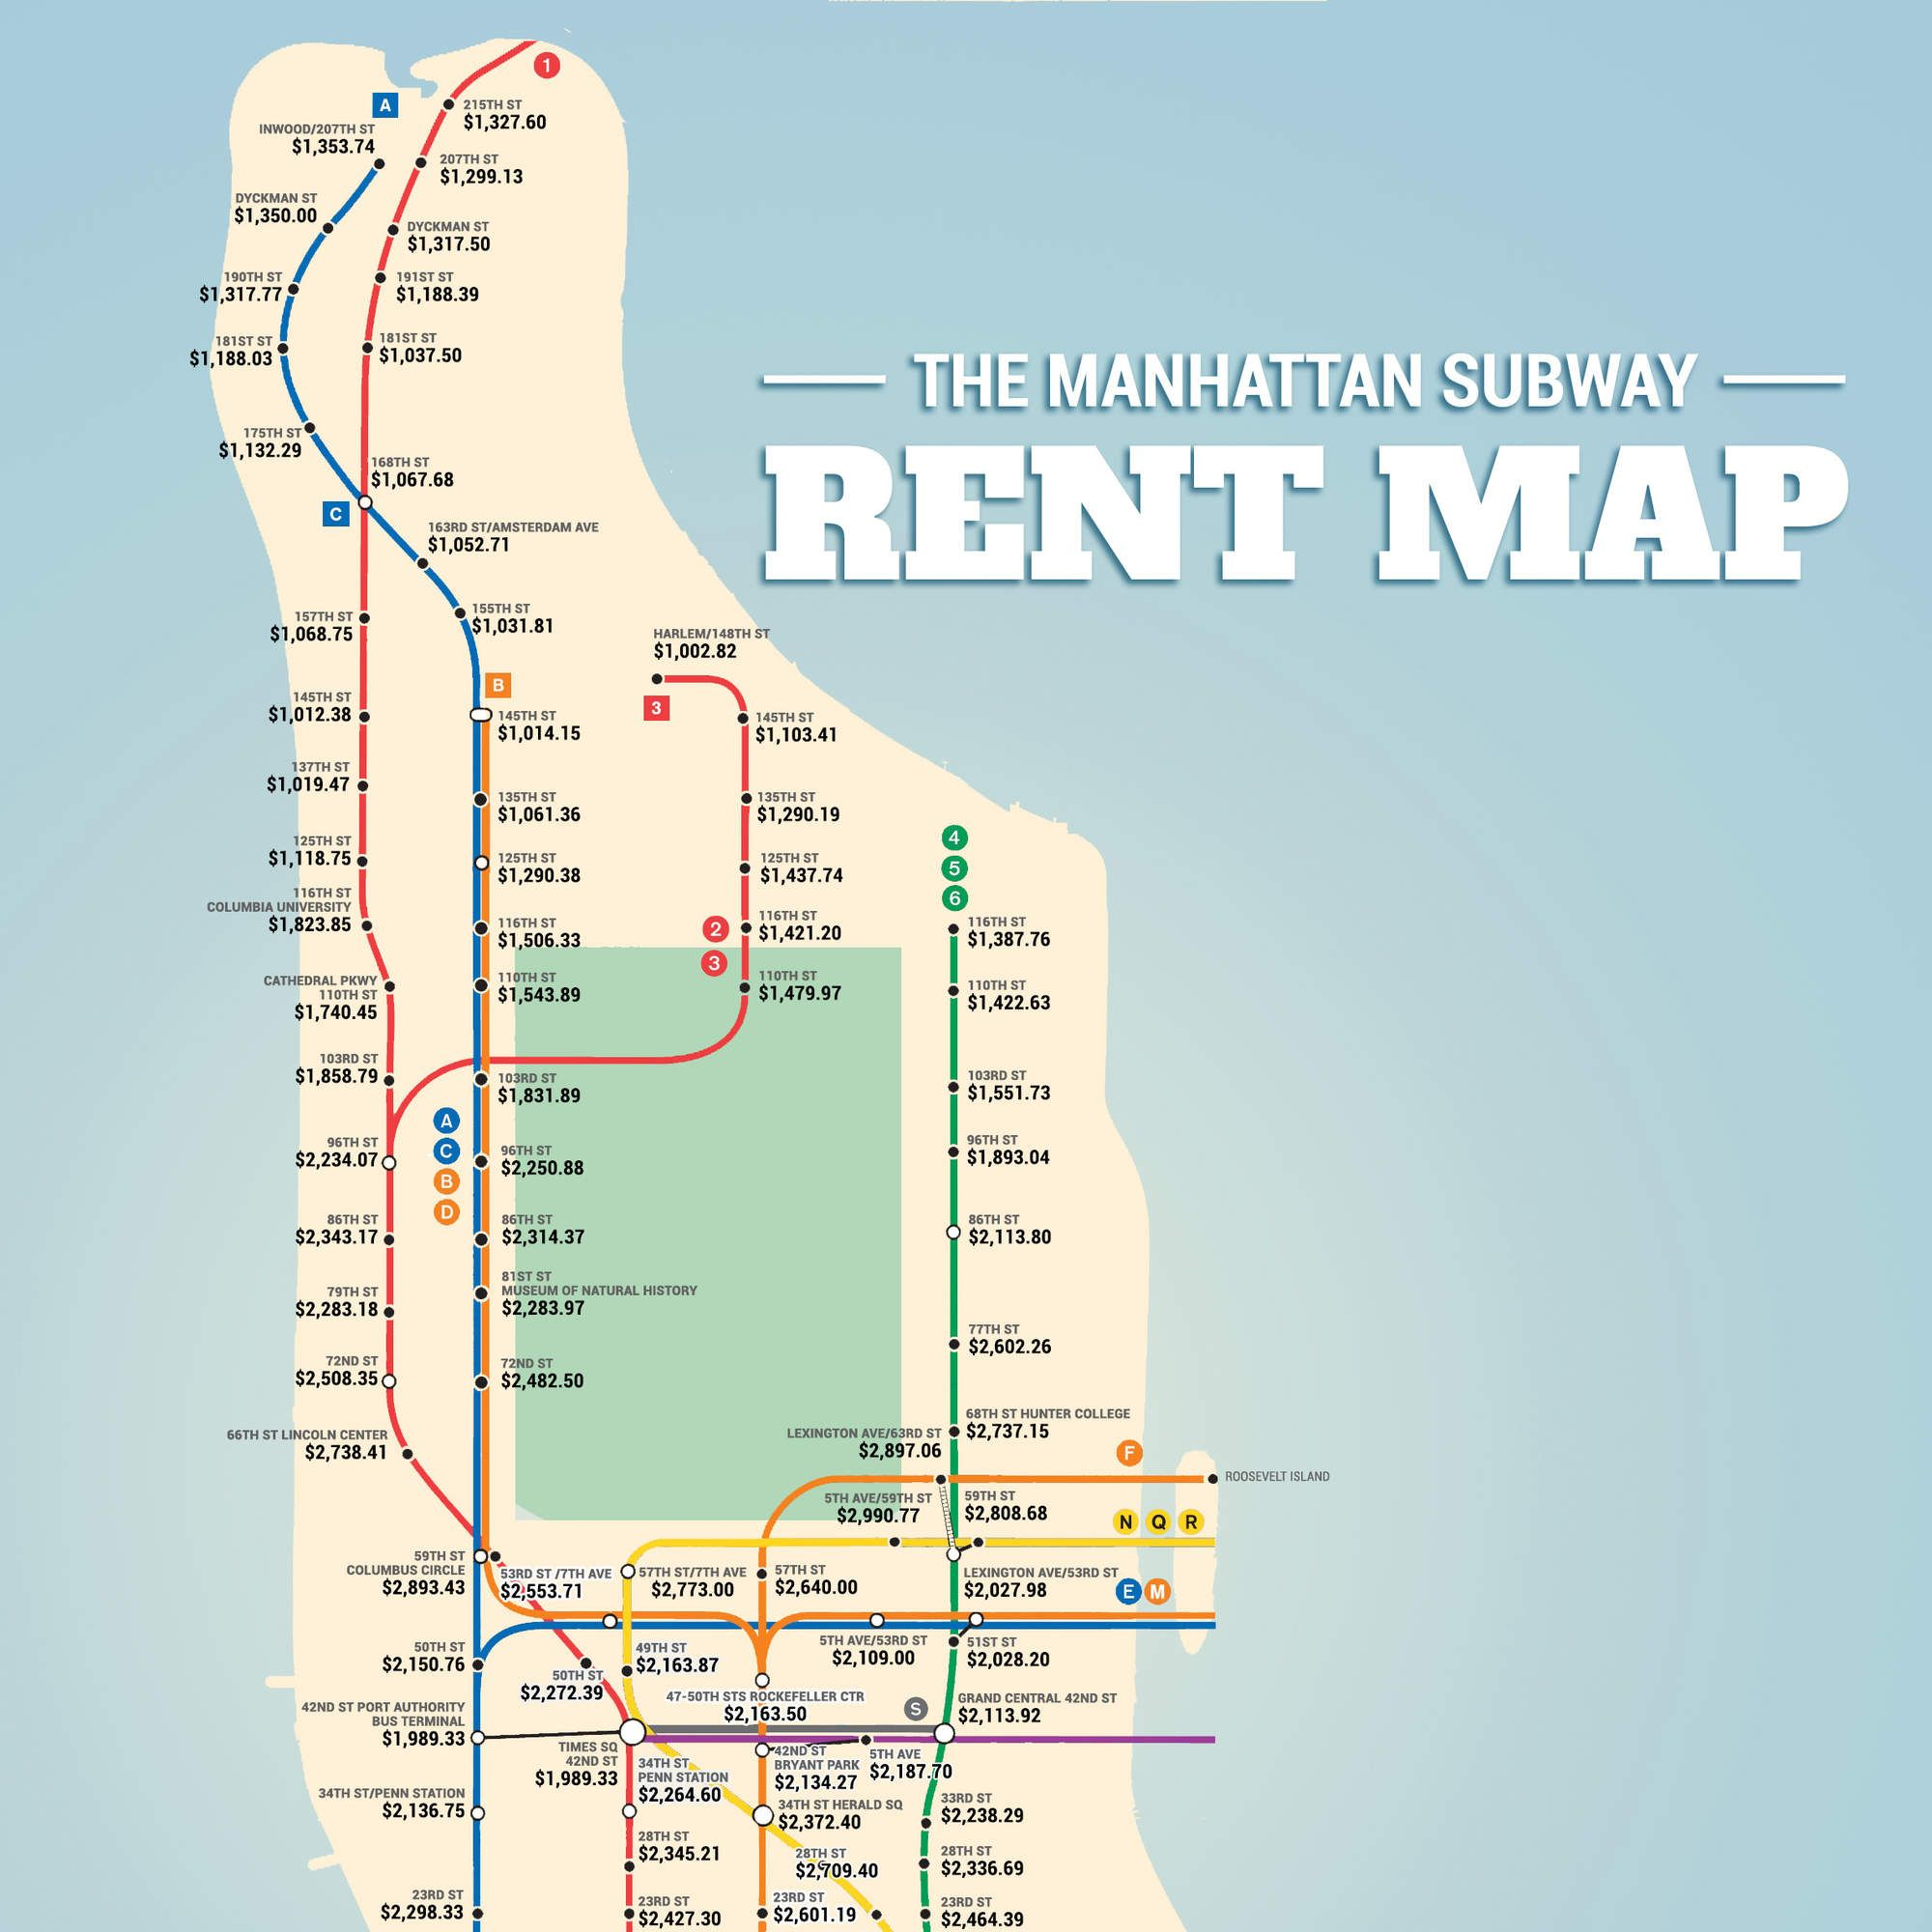 Subway Map Live.The Manhattan Subway Rent Map Where You Can T Afford To Live By